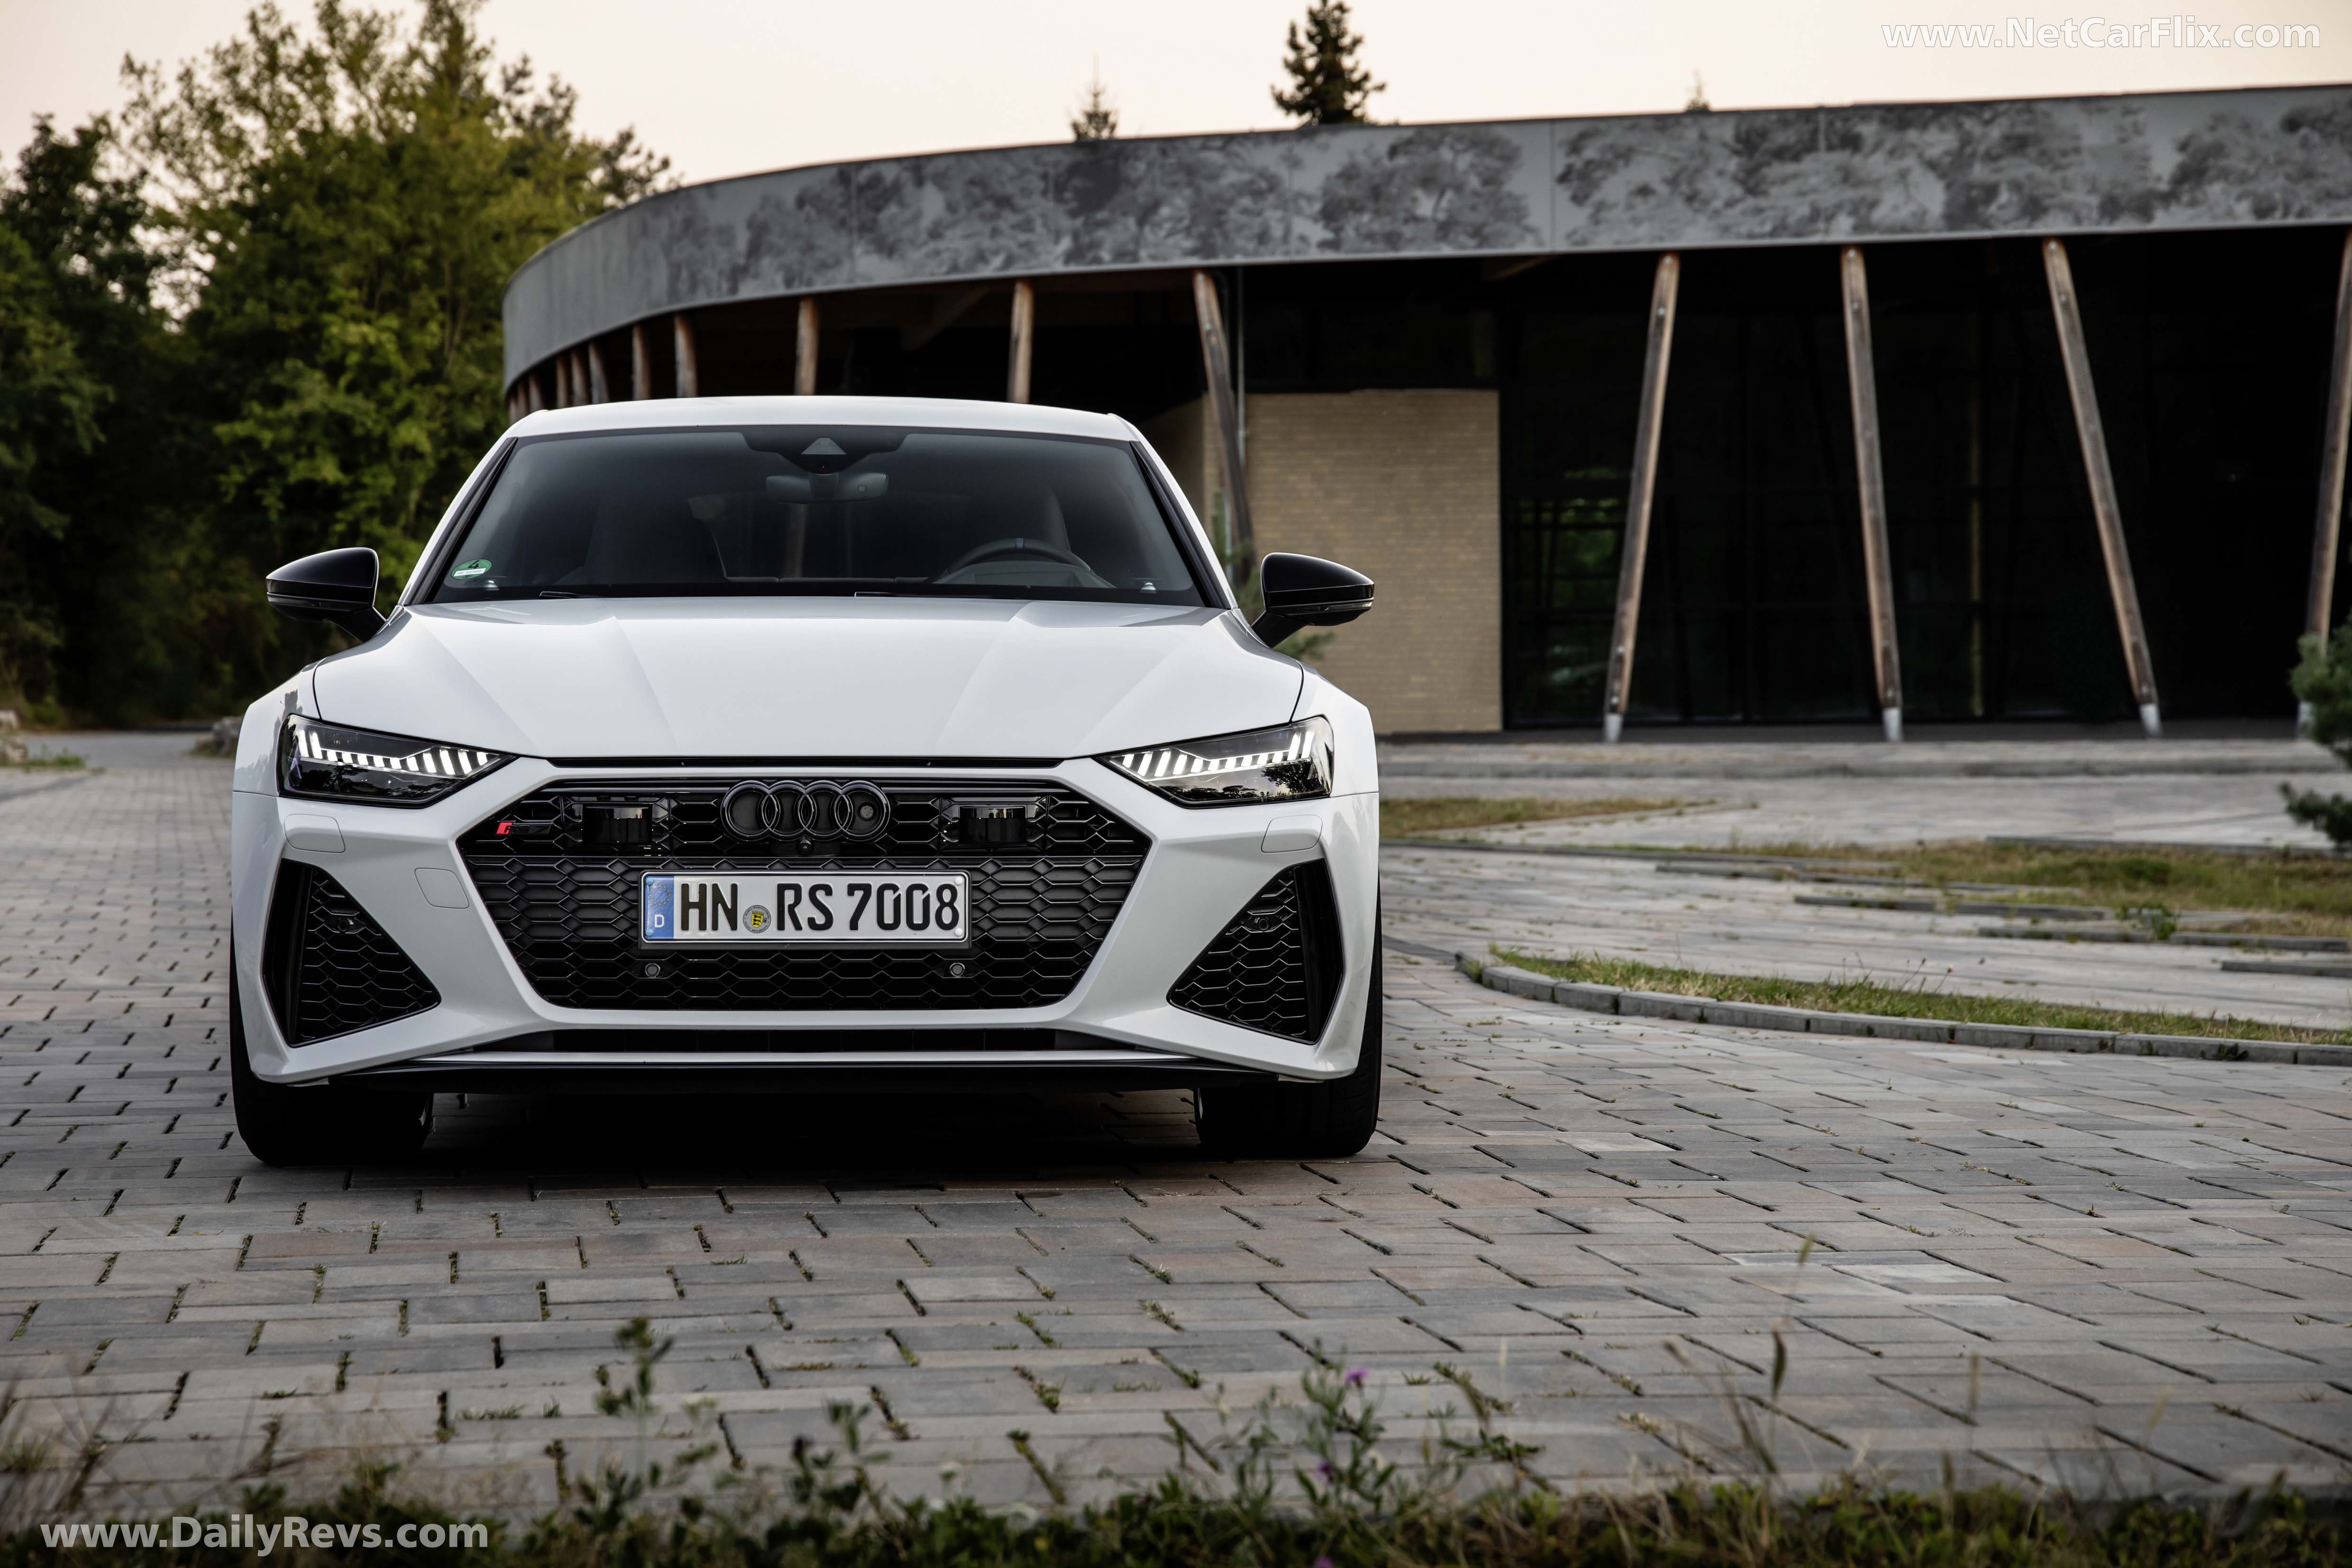 2020 Audi Rs7 Sportback Pictures Images Photos Wallpapers Dailyrevs